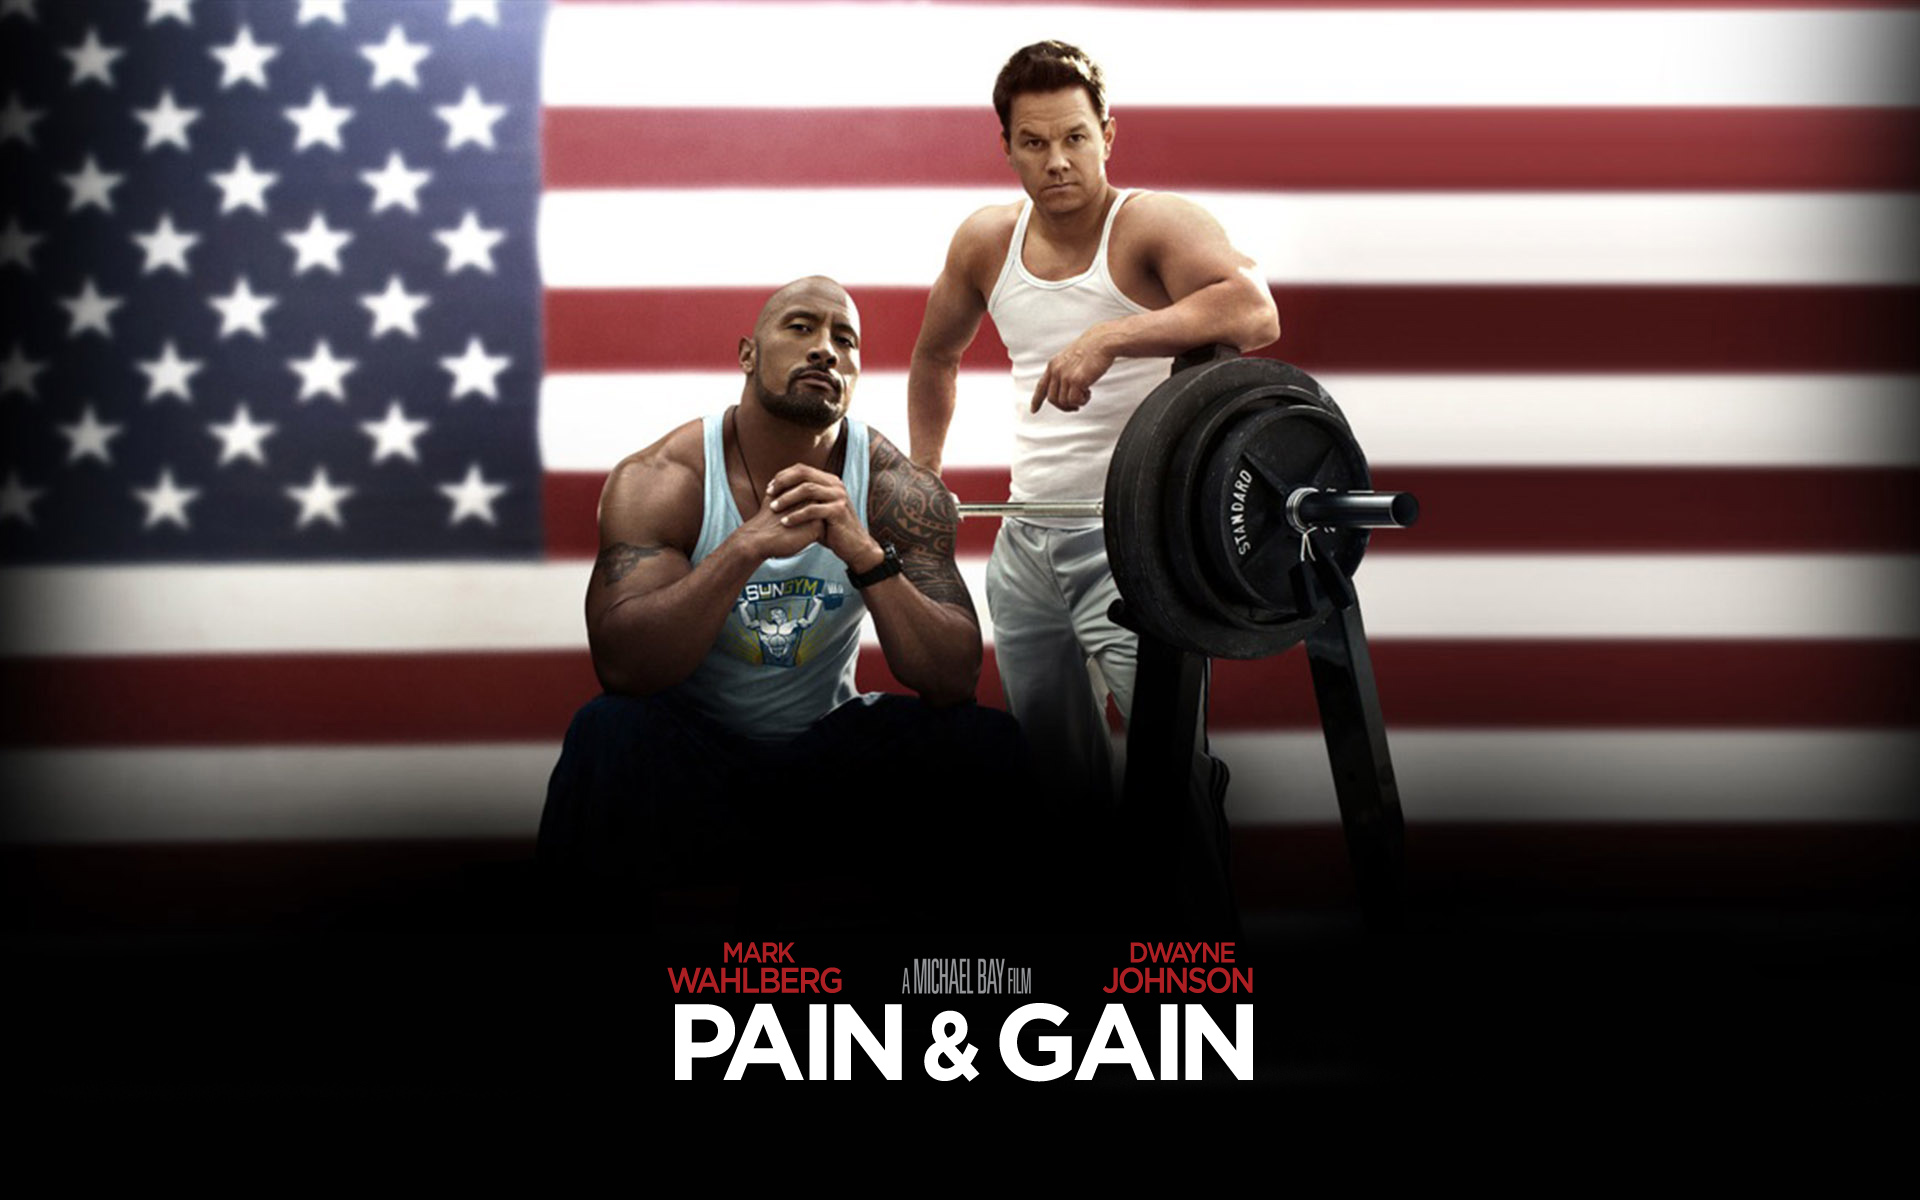 Download pain no gain filme, hd wallpapers & backgrounds.